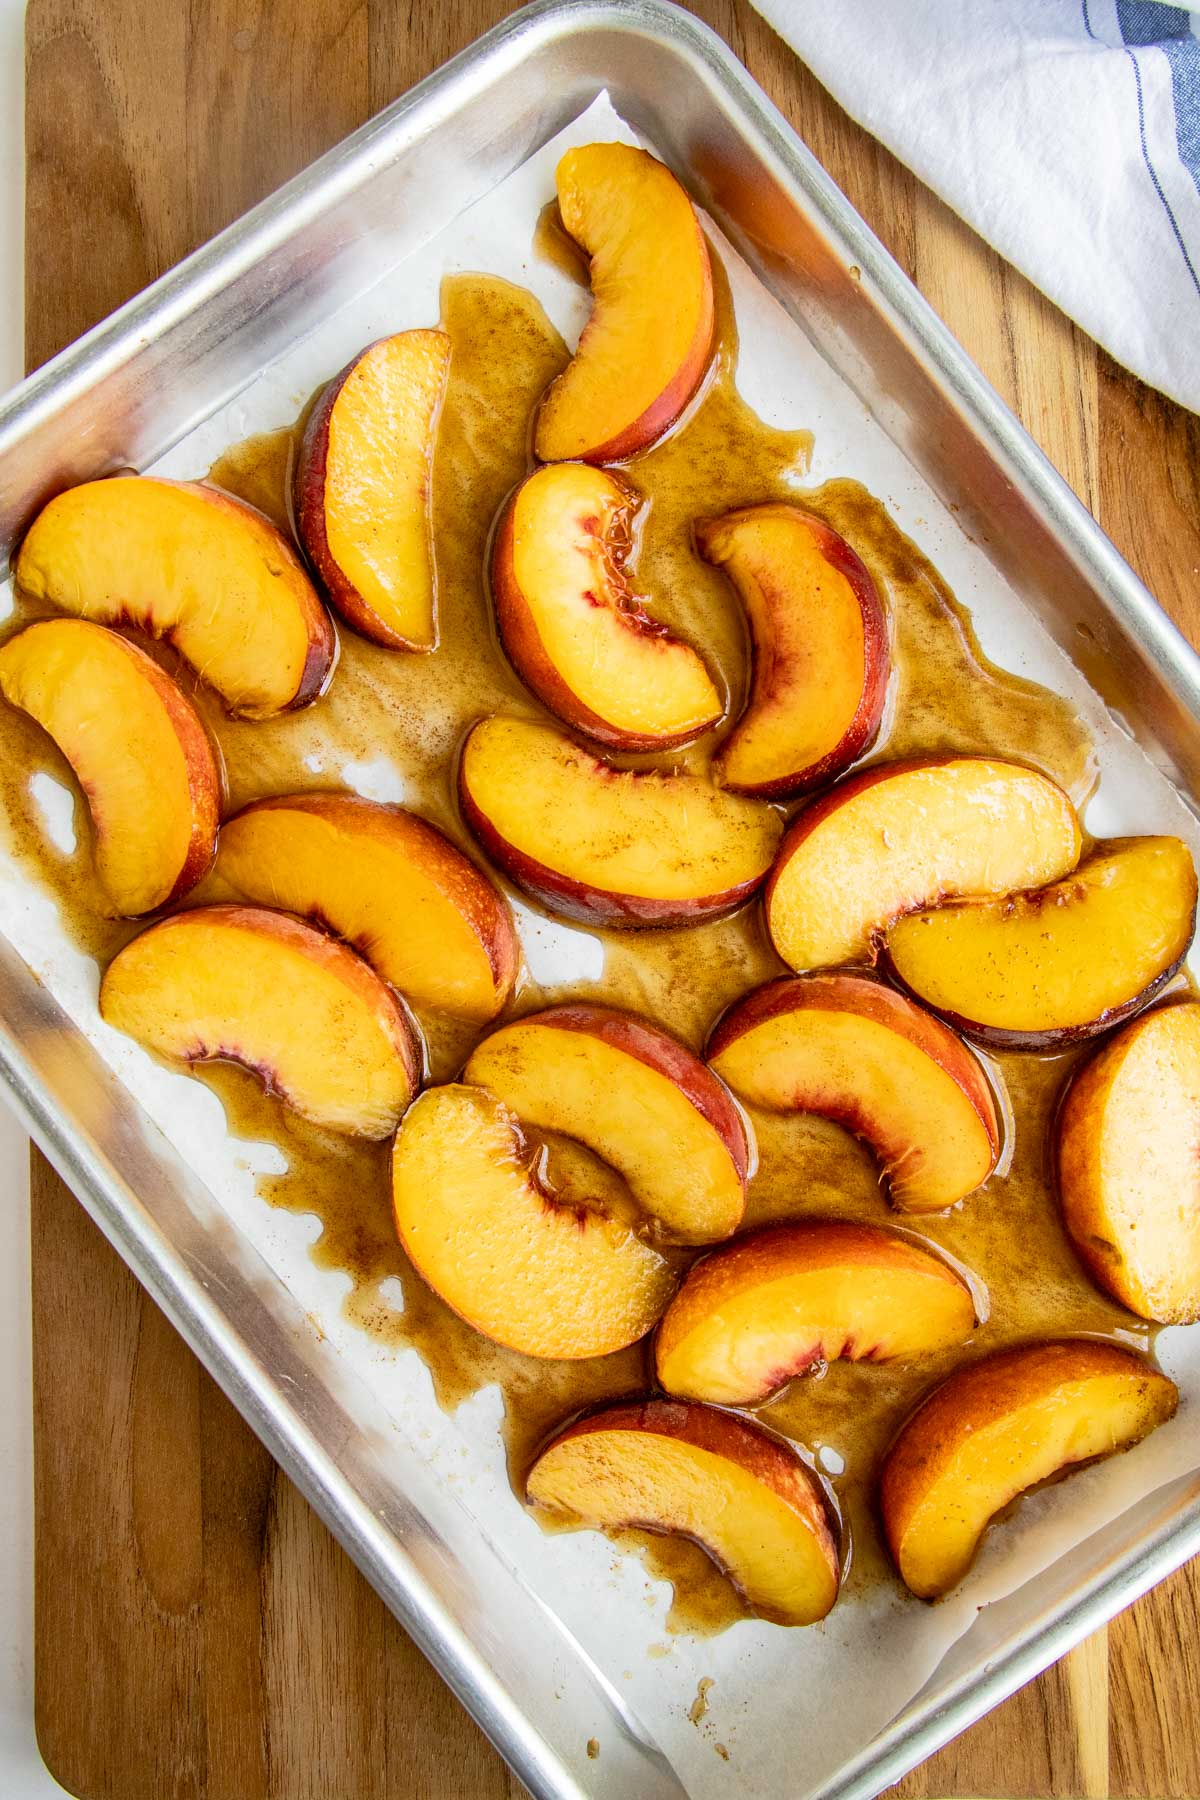 Roasted peaches on a parchment lined baking sheet